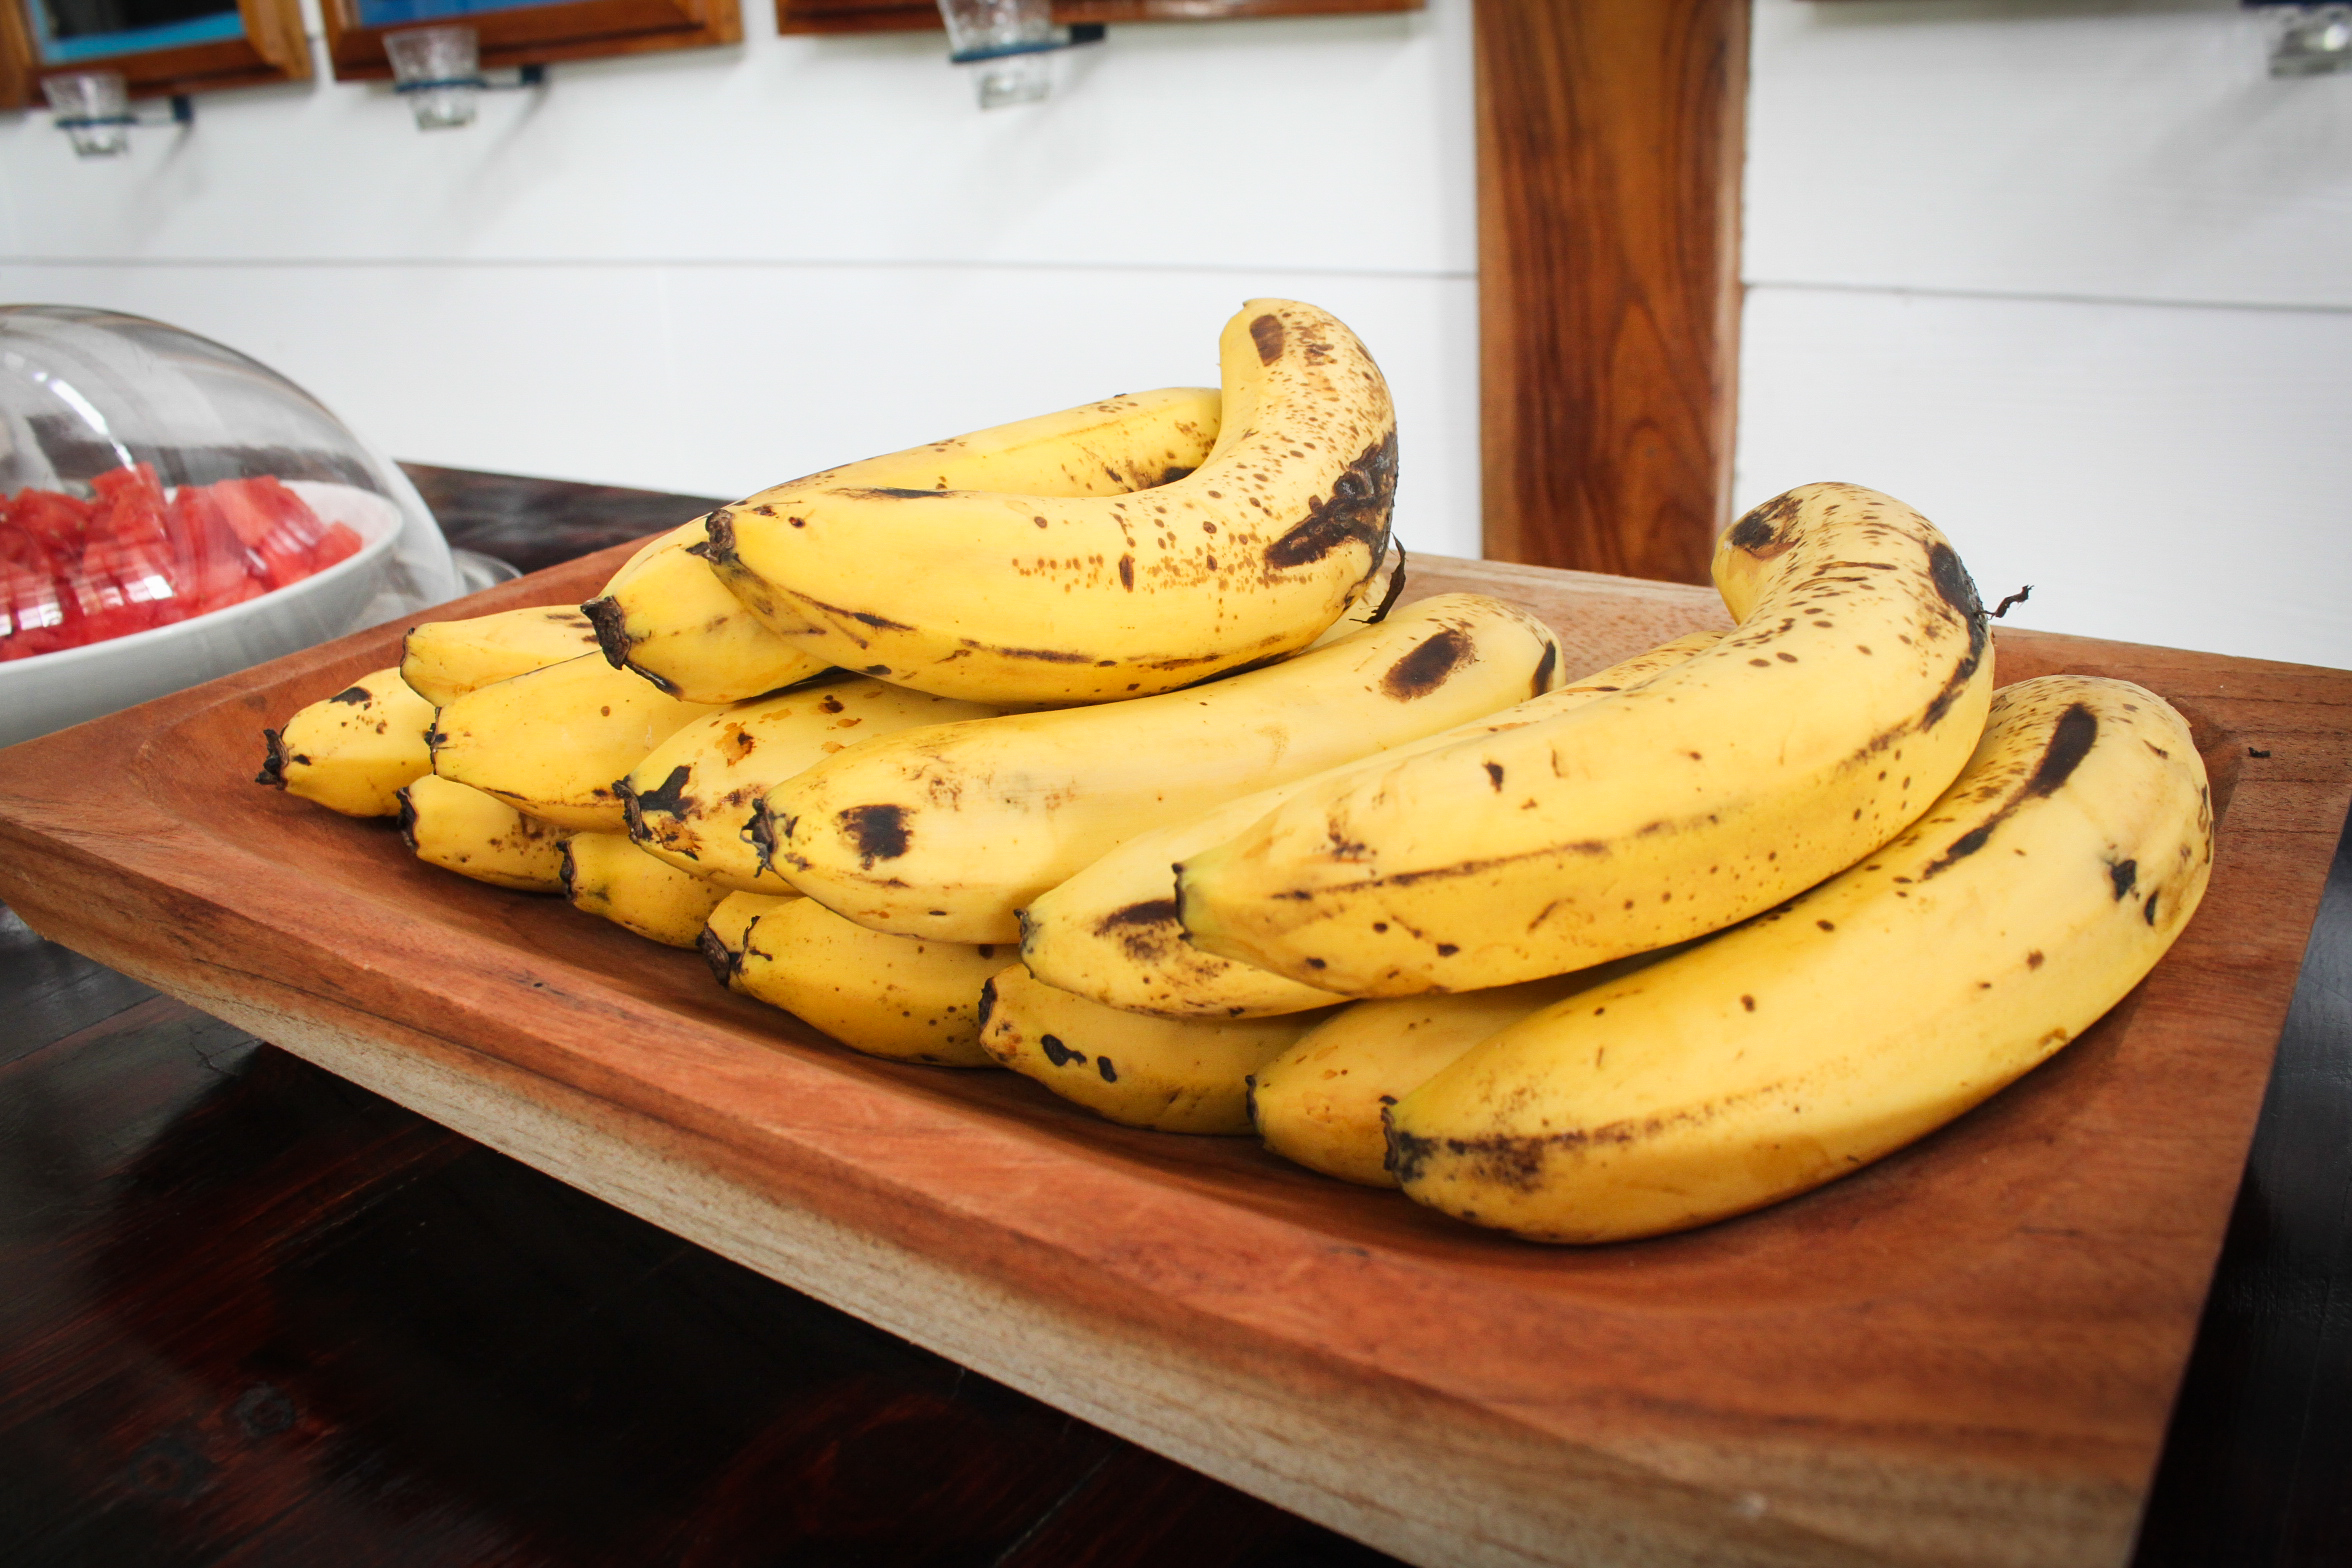 Always ripe bananas available!